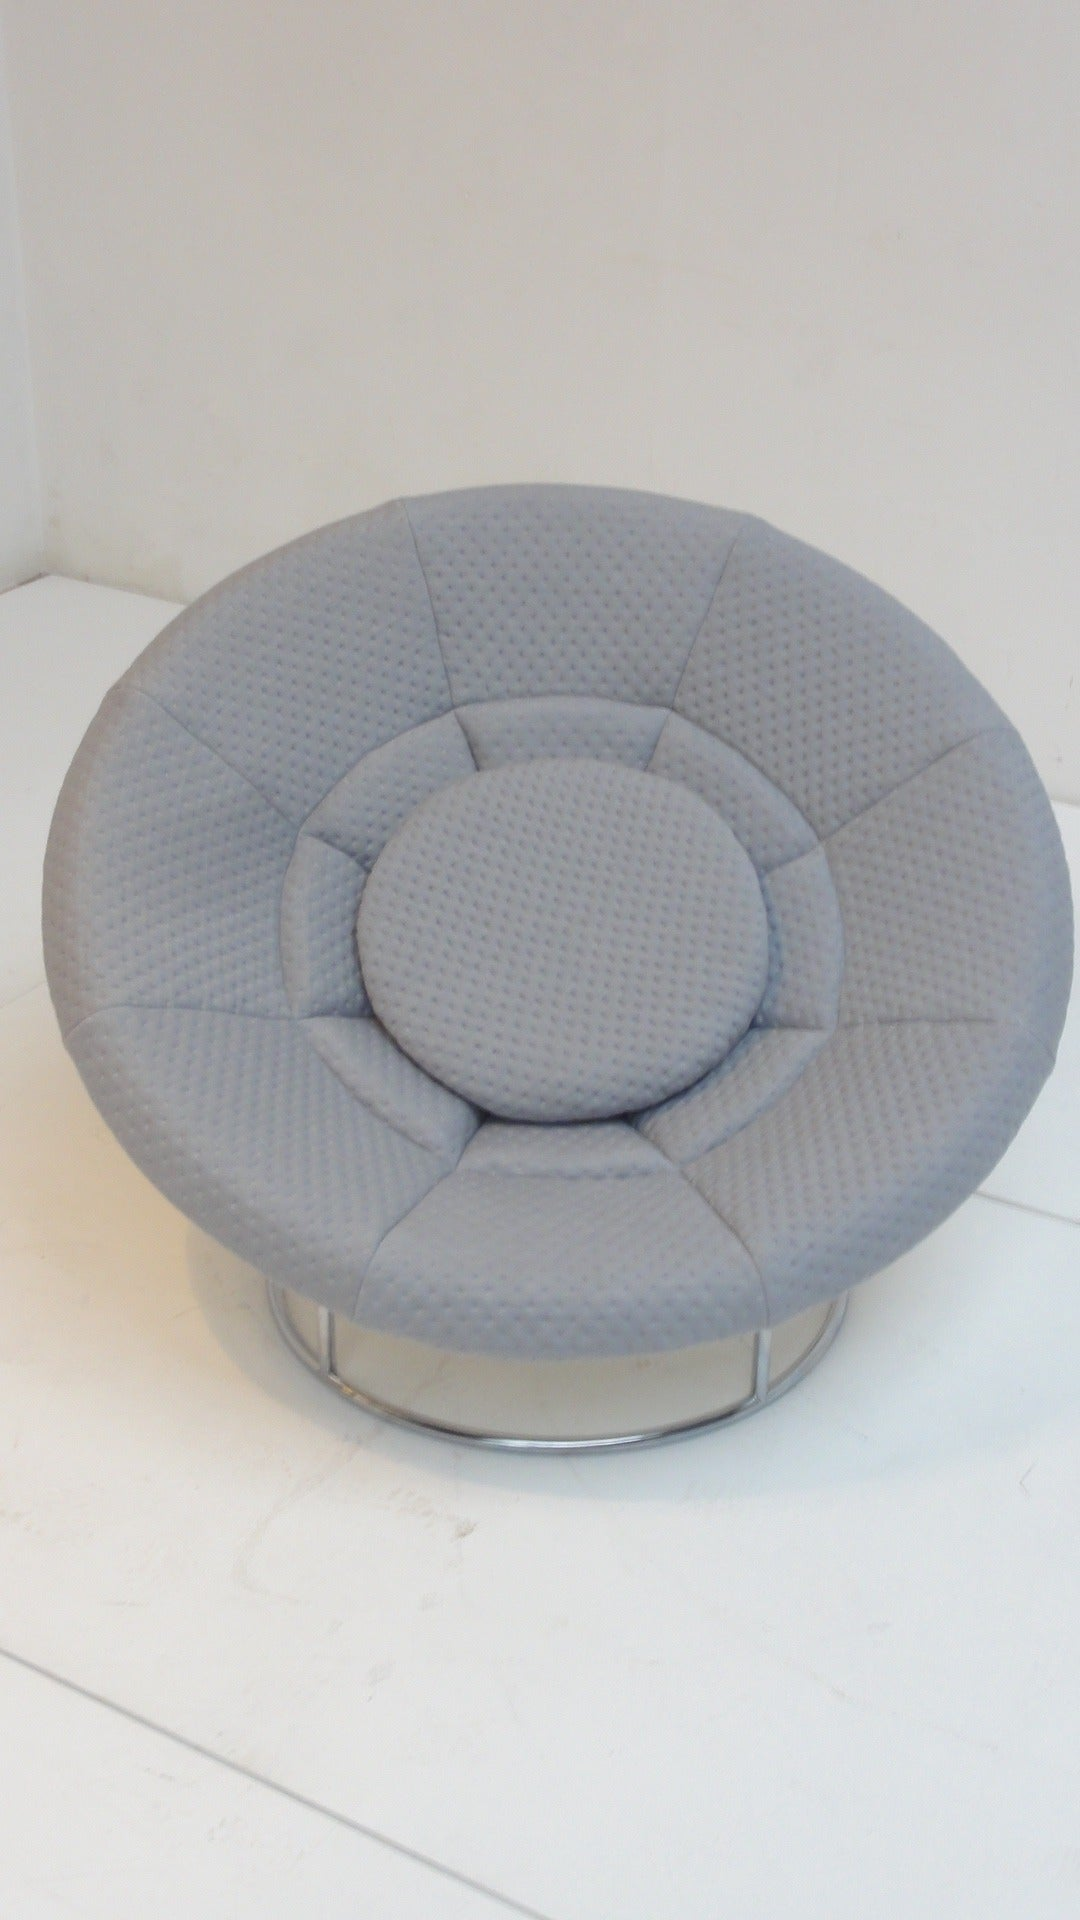 A true 1970s flower power lounge chair in the style of Verner Panton's Peacock chair.  The half globe white fiberglass shell is upholstered with new